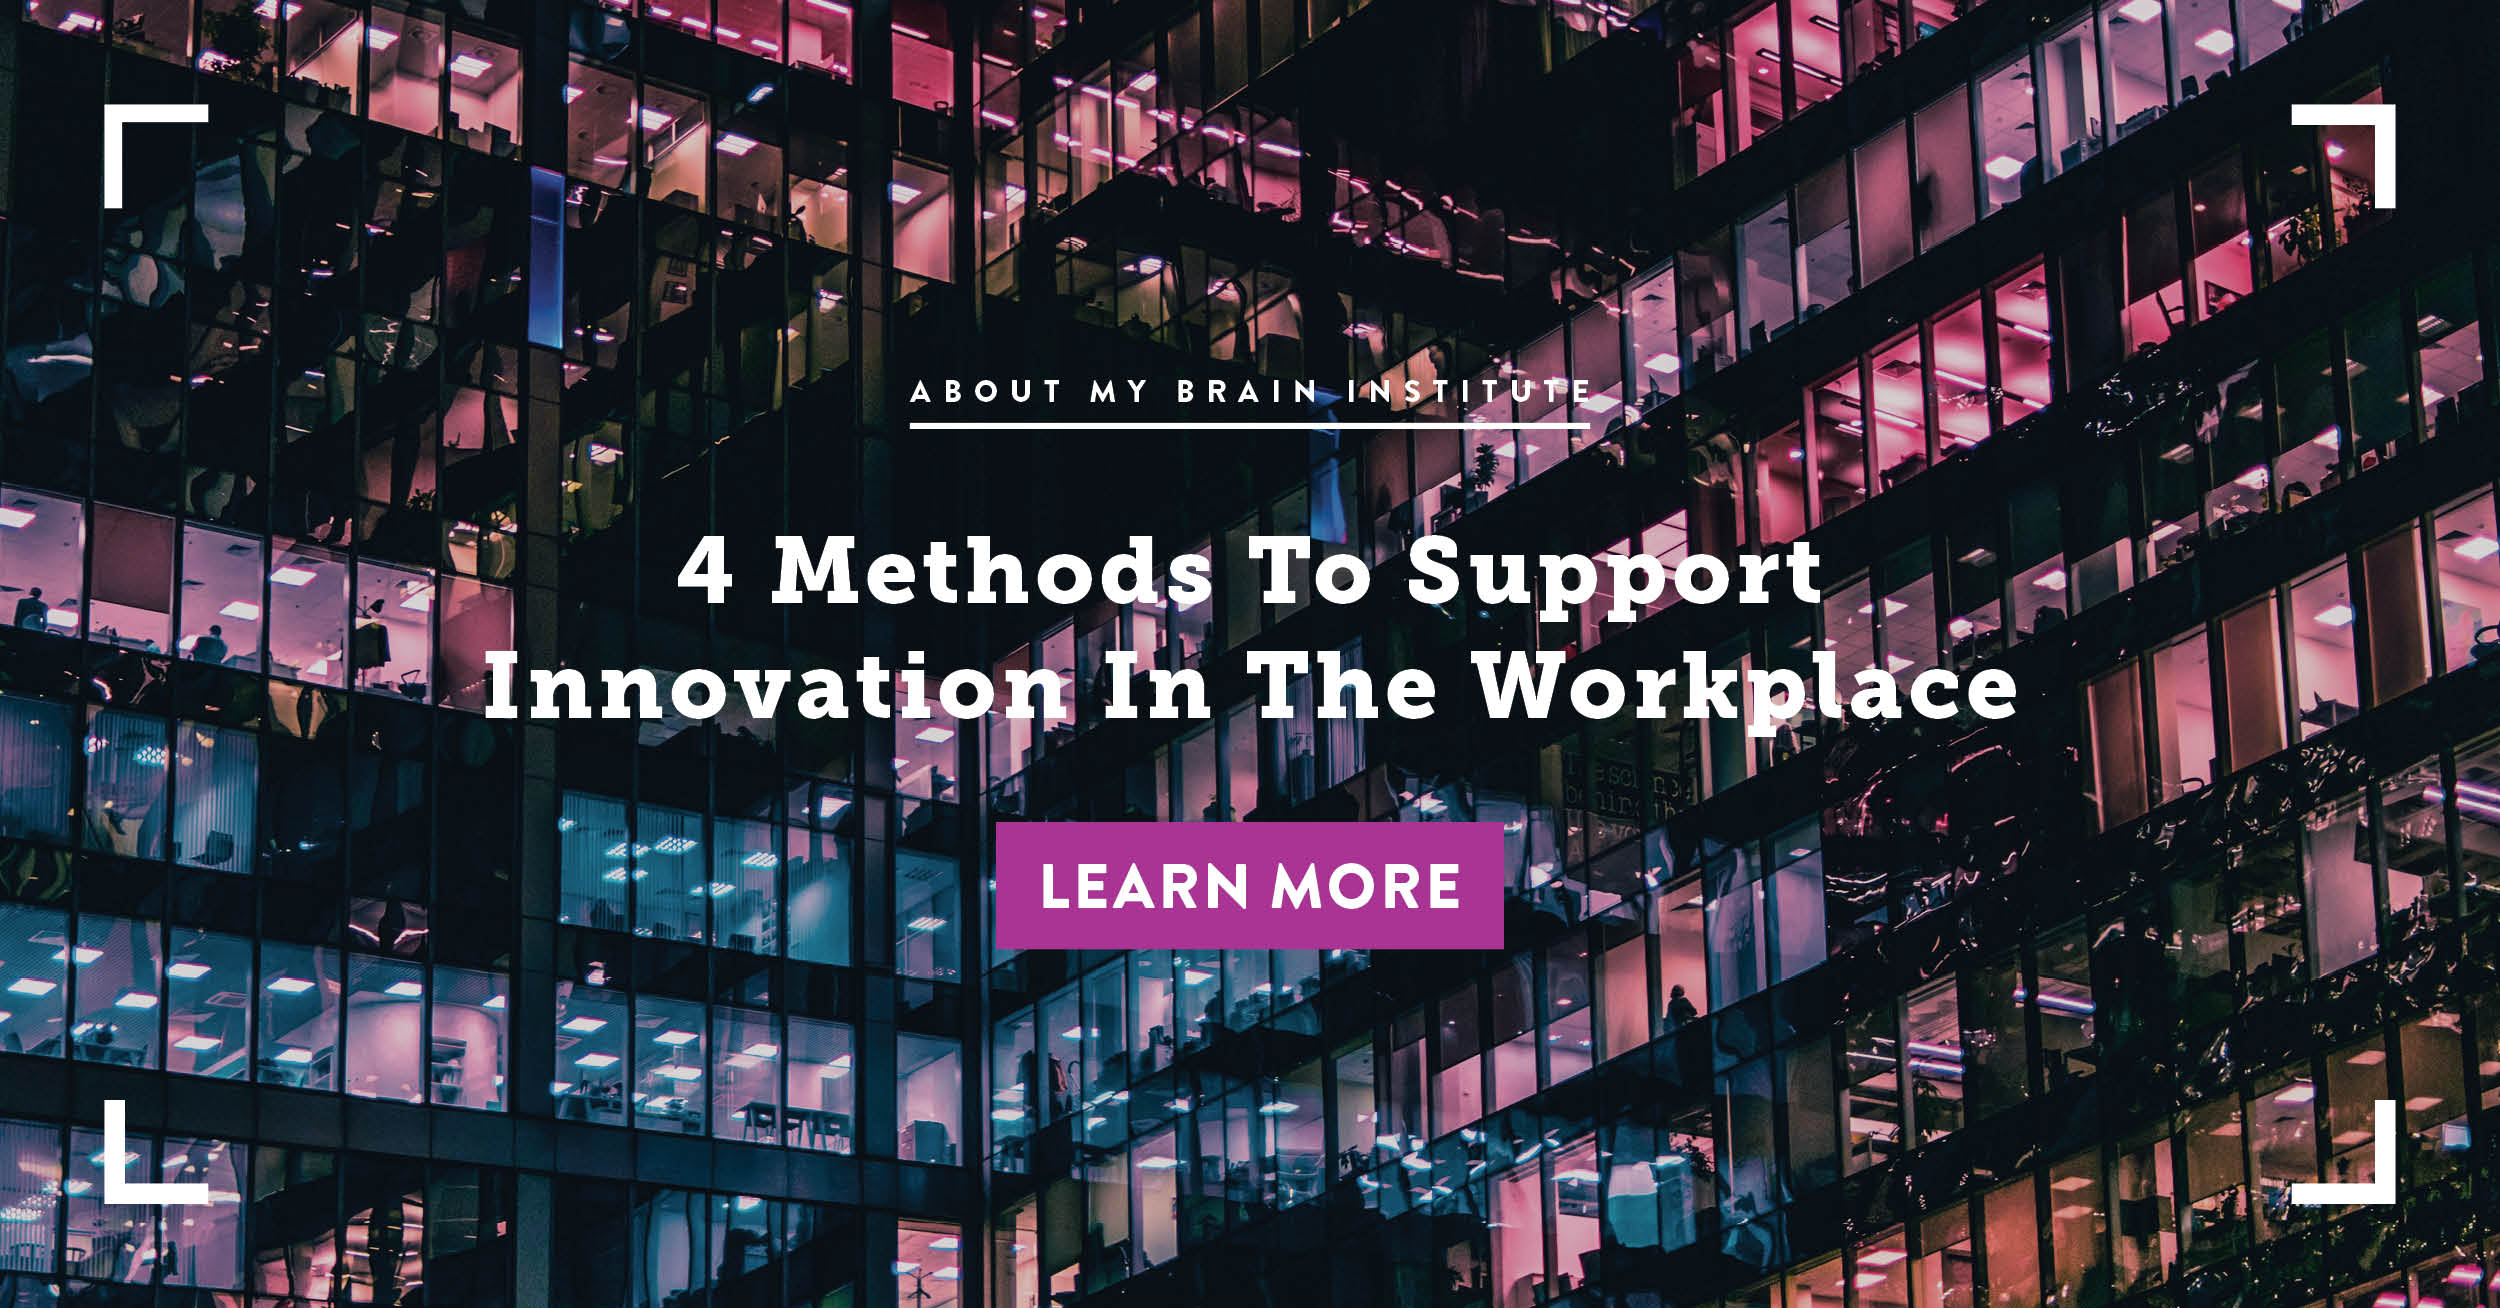 4 Methods To Support Innovation In the Workplace